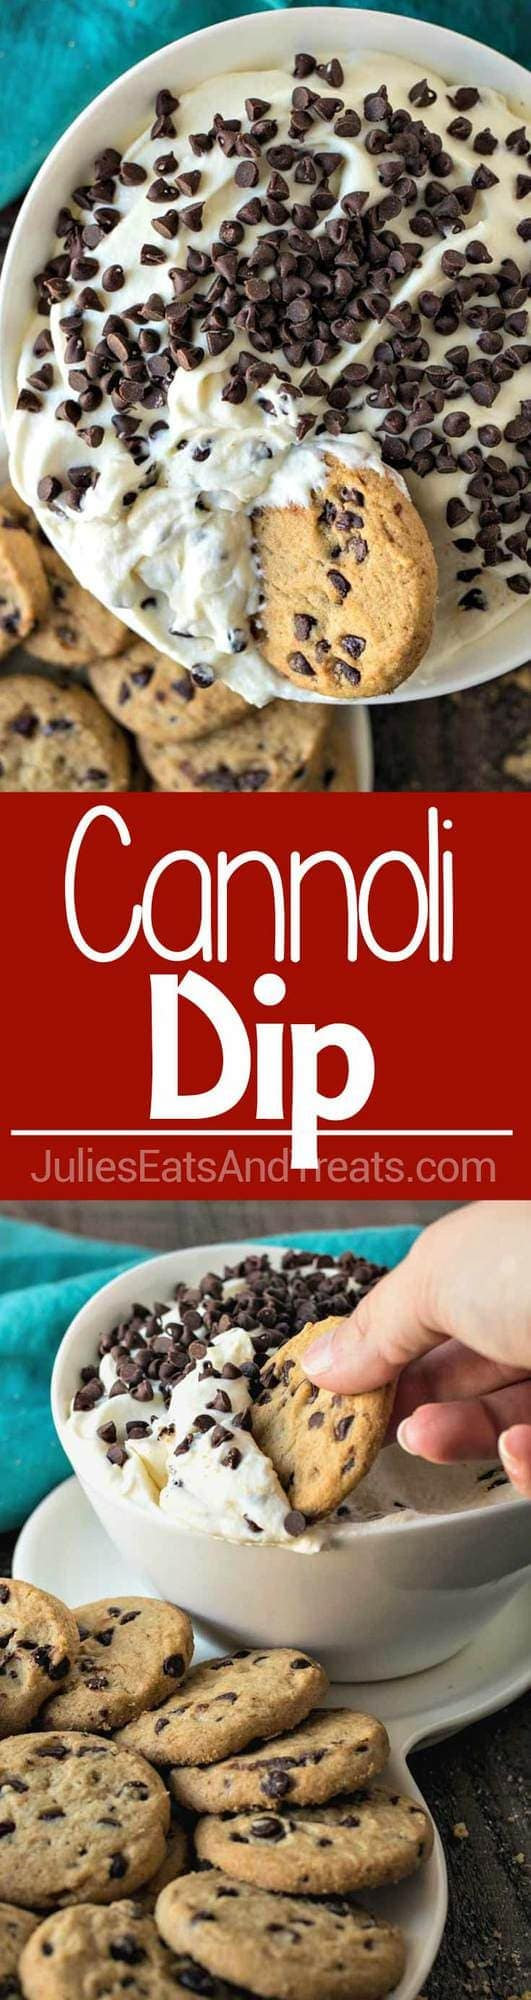 Cannoli Dip - A Creamy Dessert Dip Made from Whipped Cannoli Filling Using Real Marscapone Cheese and Served with Chocolate Chip Cookies!